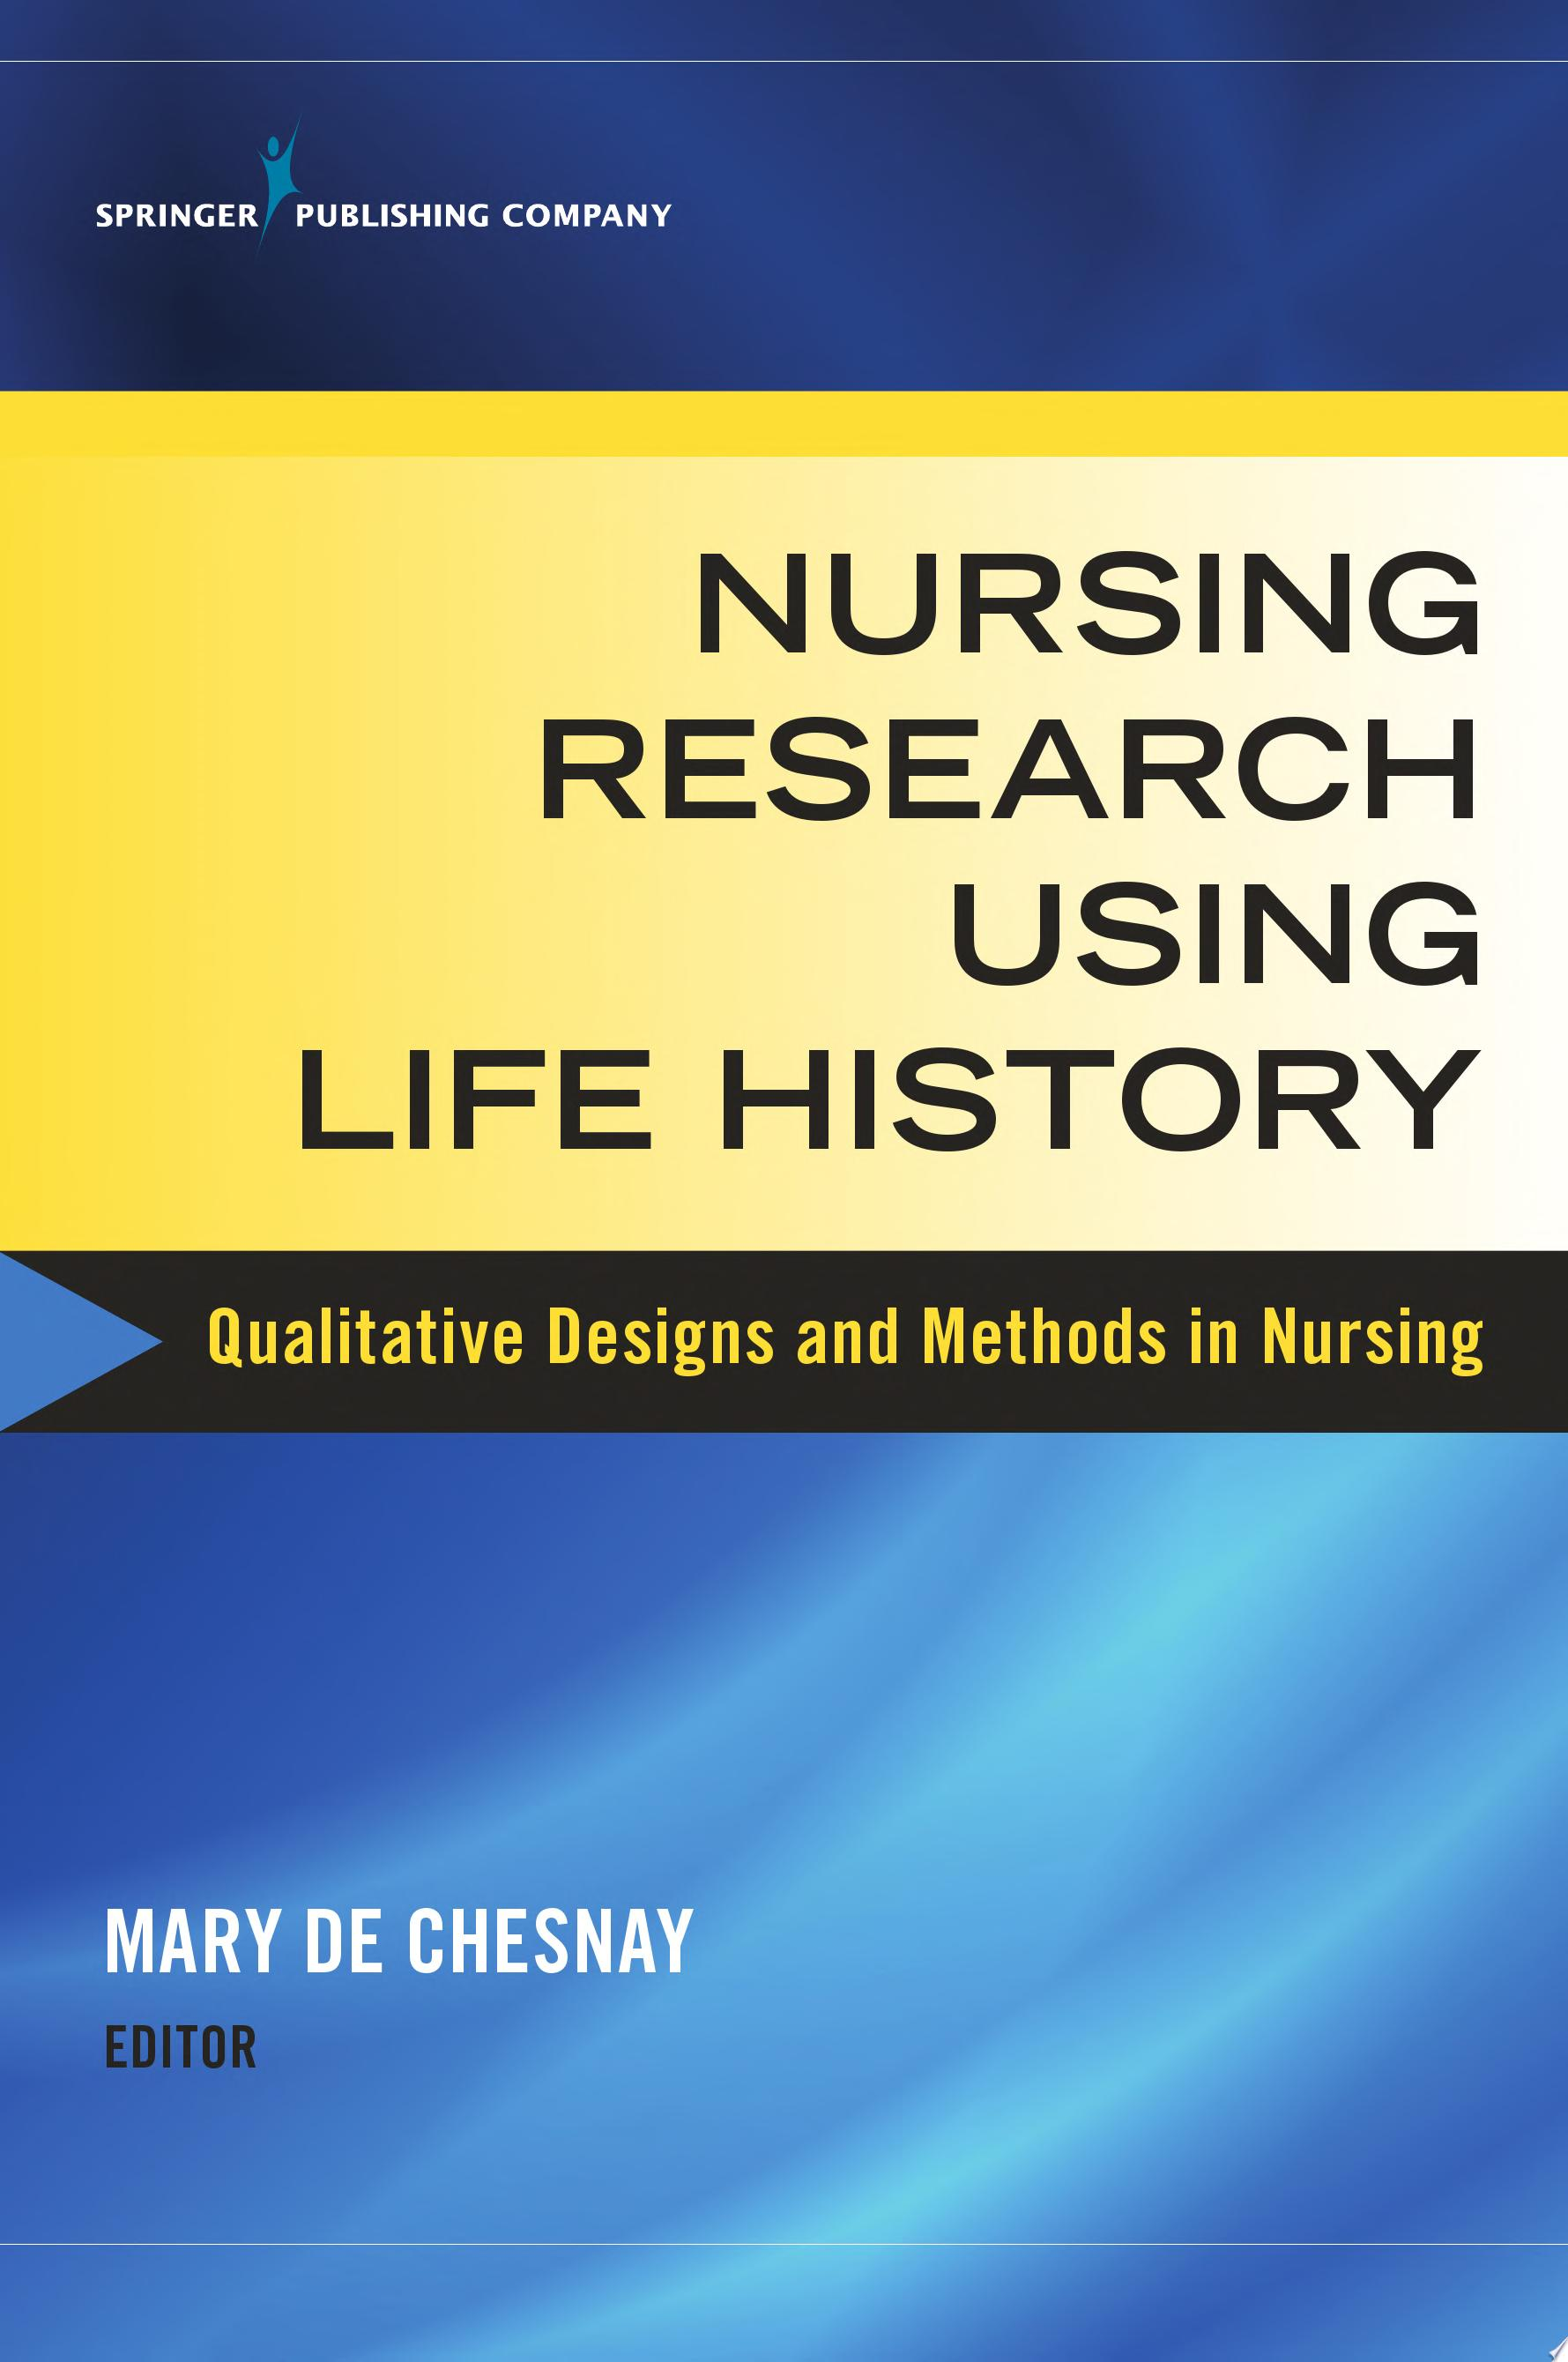 Nursing Research Using Life History